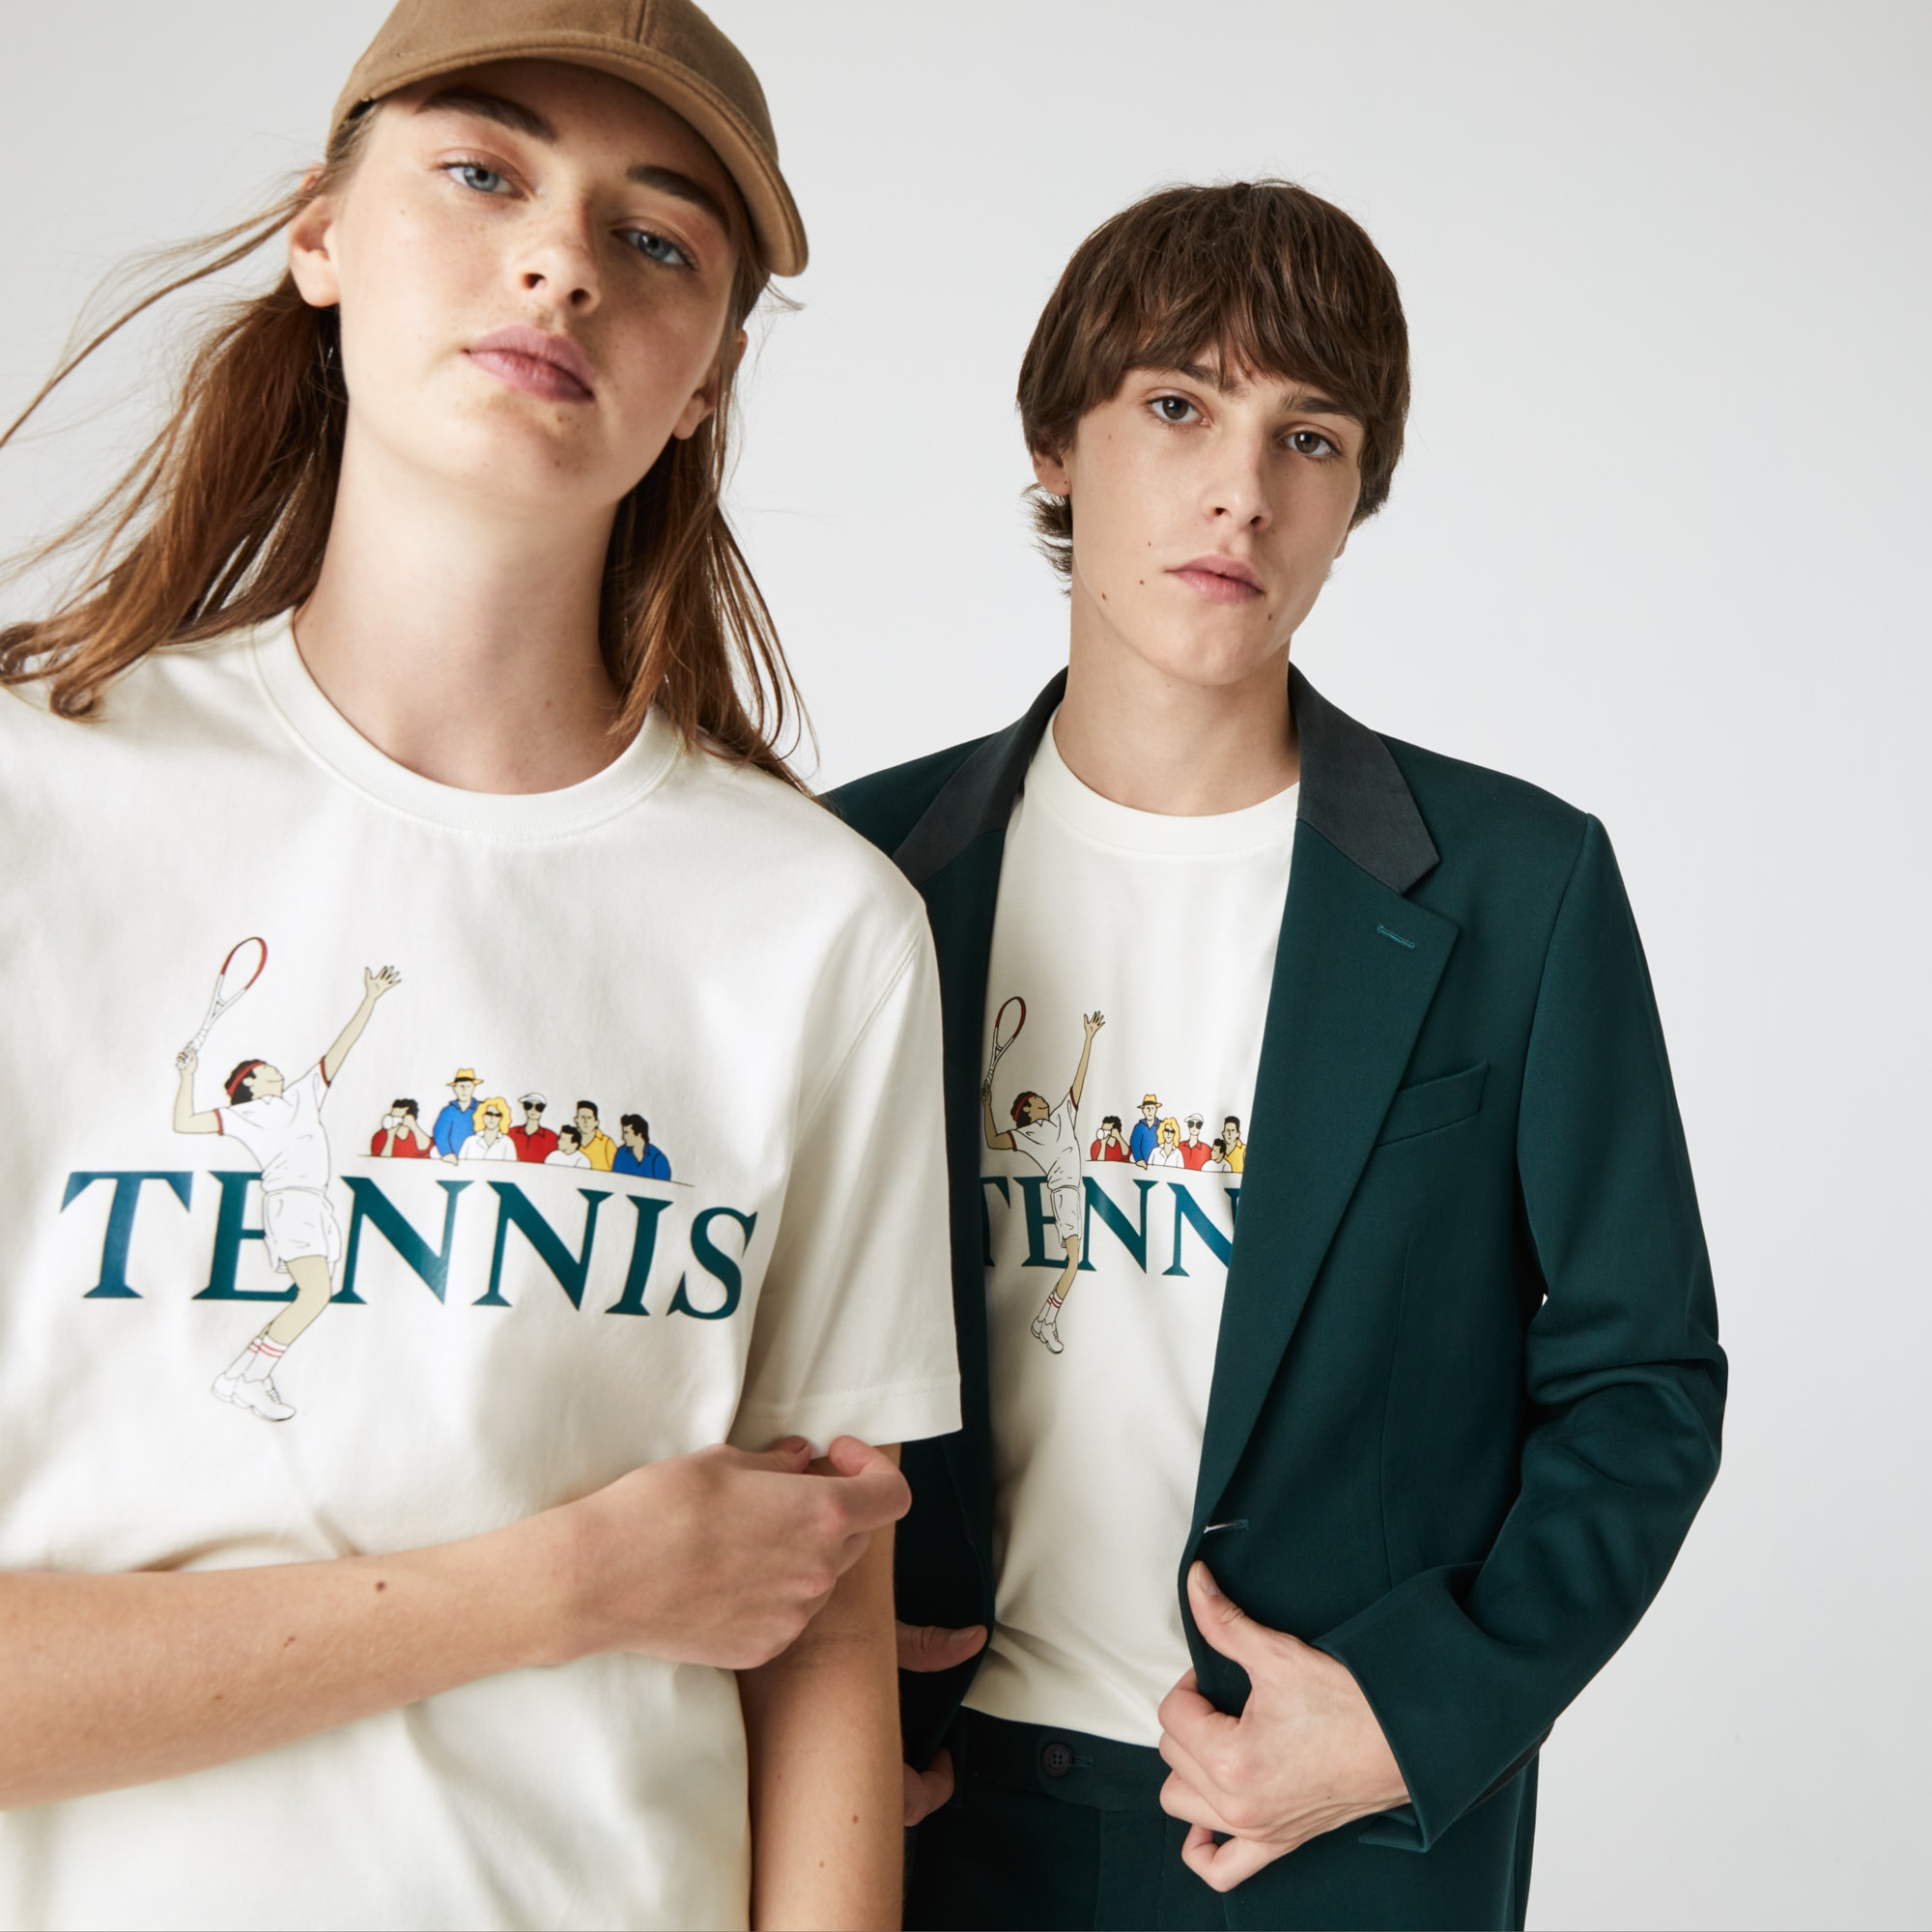 Unisex Lacoste LIVE Lacoste Tennis Design Cotton T-shirt